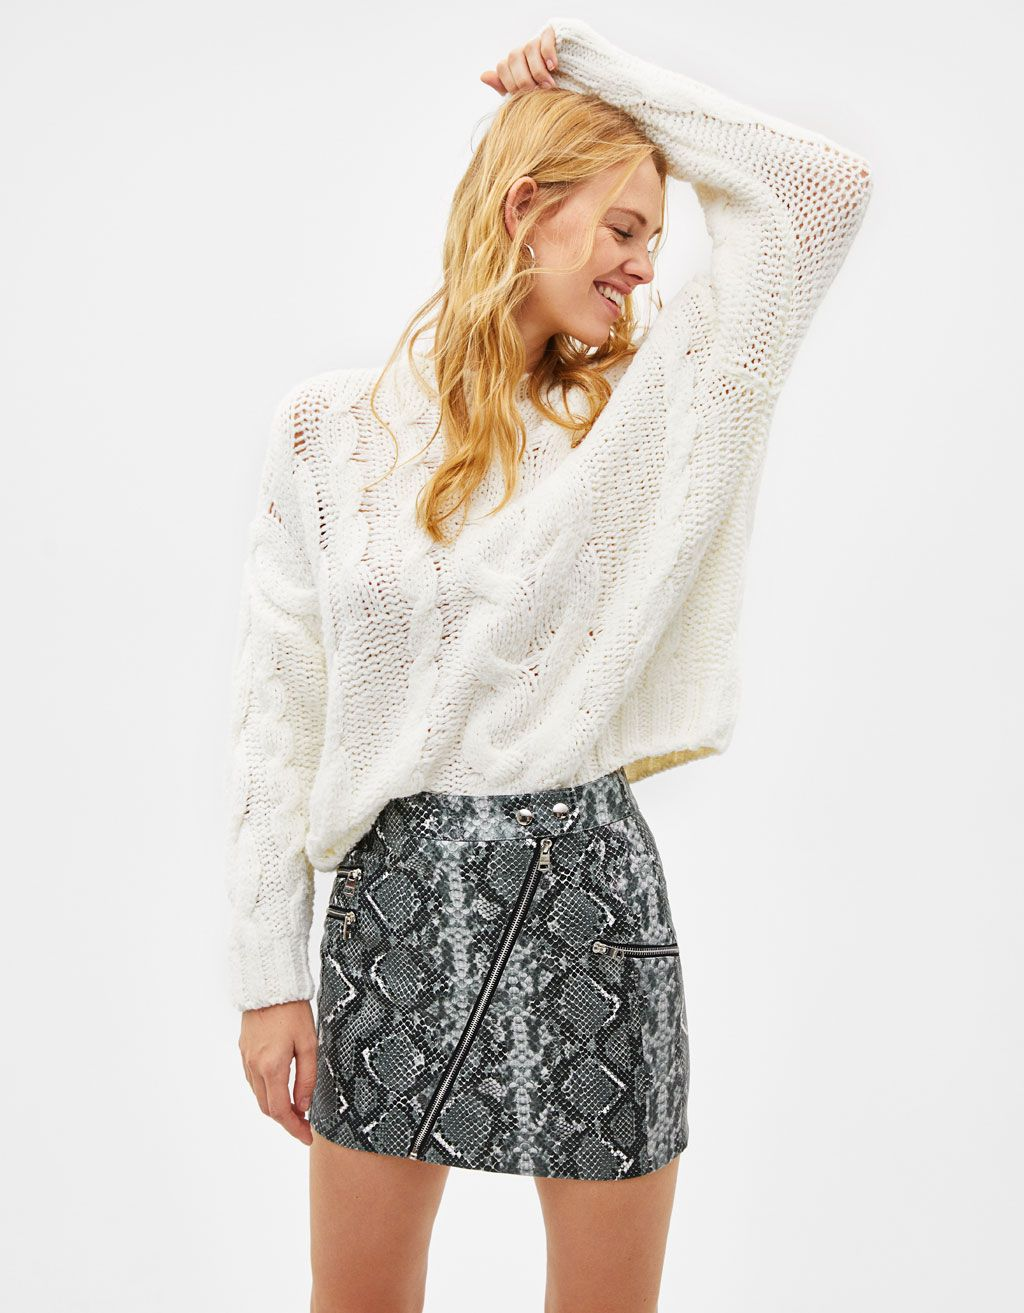 6e2224ca2 Snake print skirt in 2019 | clothes inspo | Printed skirt outfit ...